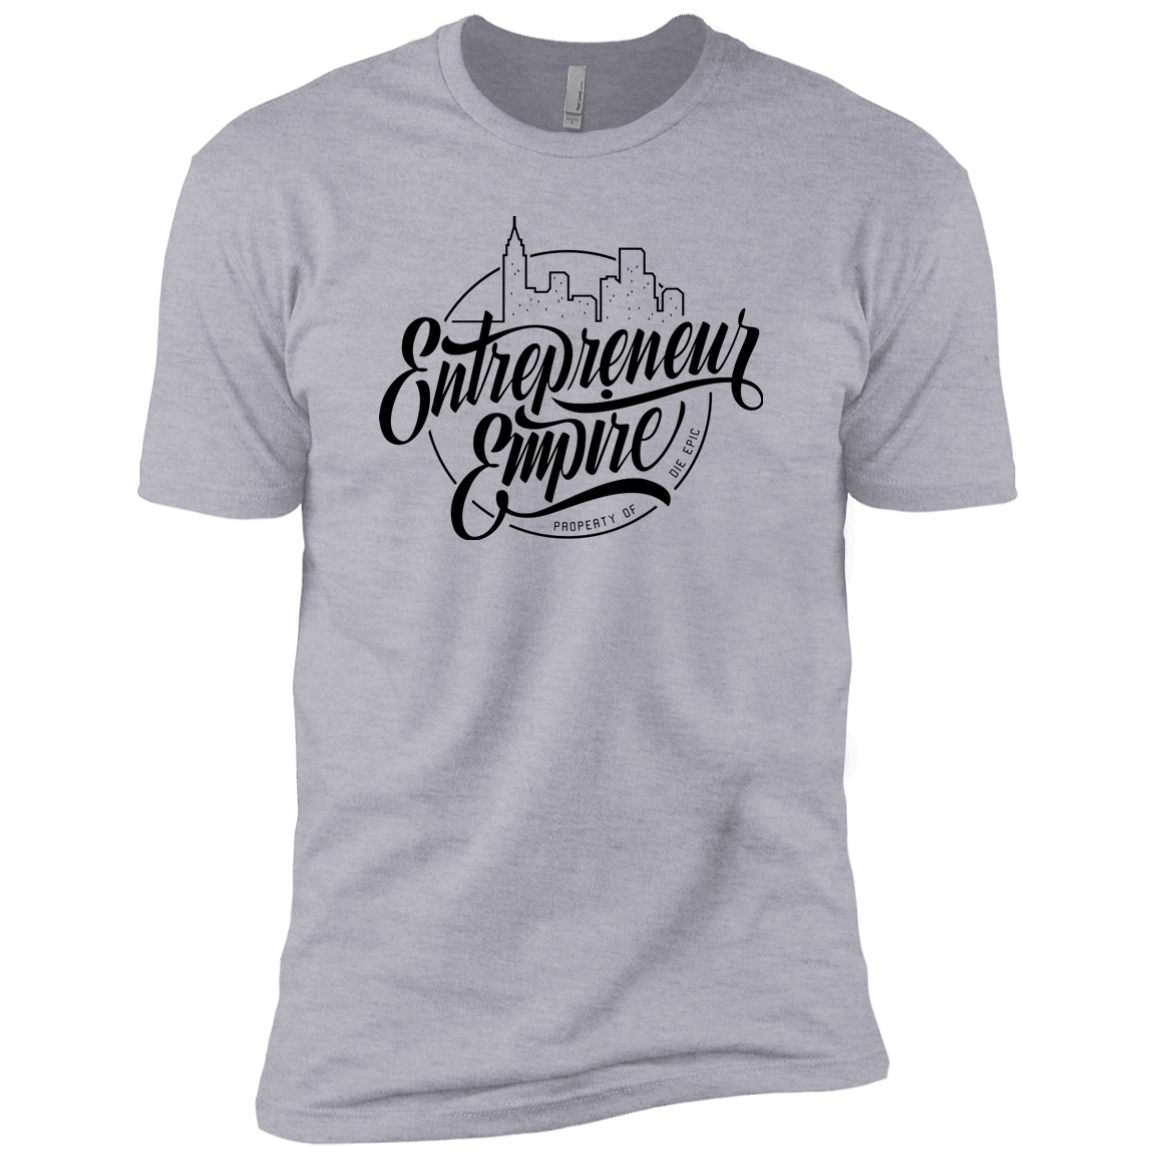 Entrepreneur Empire Short Sleeve T-Shirt: Bootstrappers Edition | Entrepreneur Apparel & Gear | Entrepreneur Empire